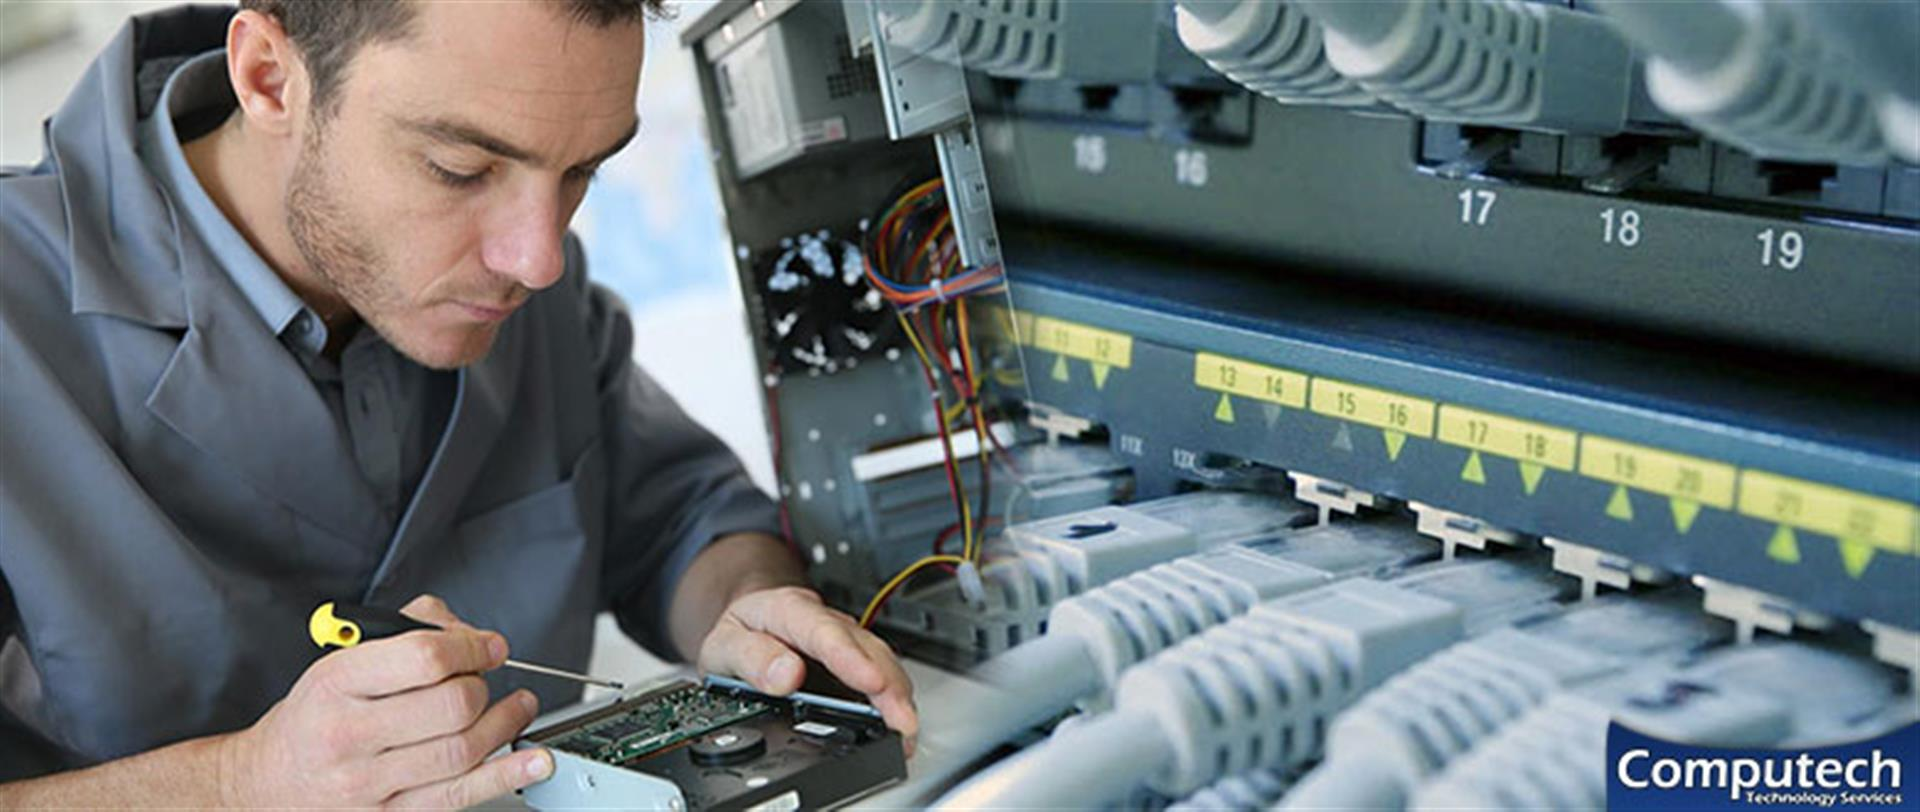 Benson Arizona On-Site PC & Printer Repair, Networking, Voice and Data Low Voltage Cabling Solutions